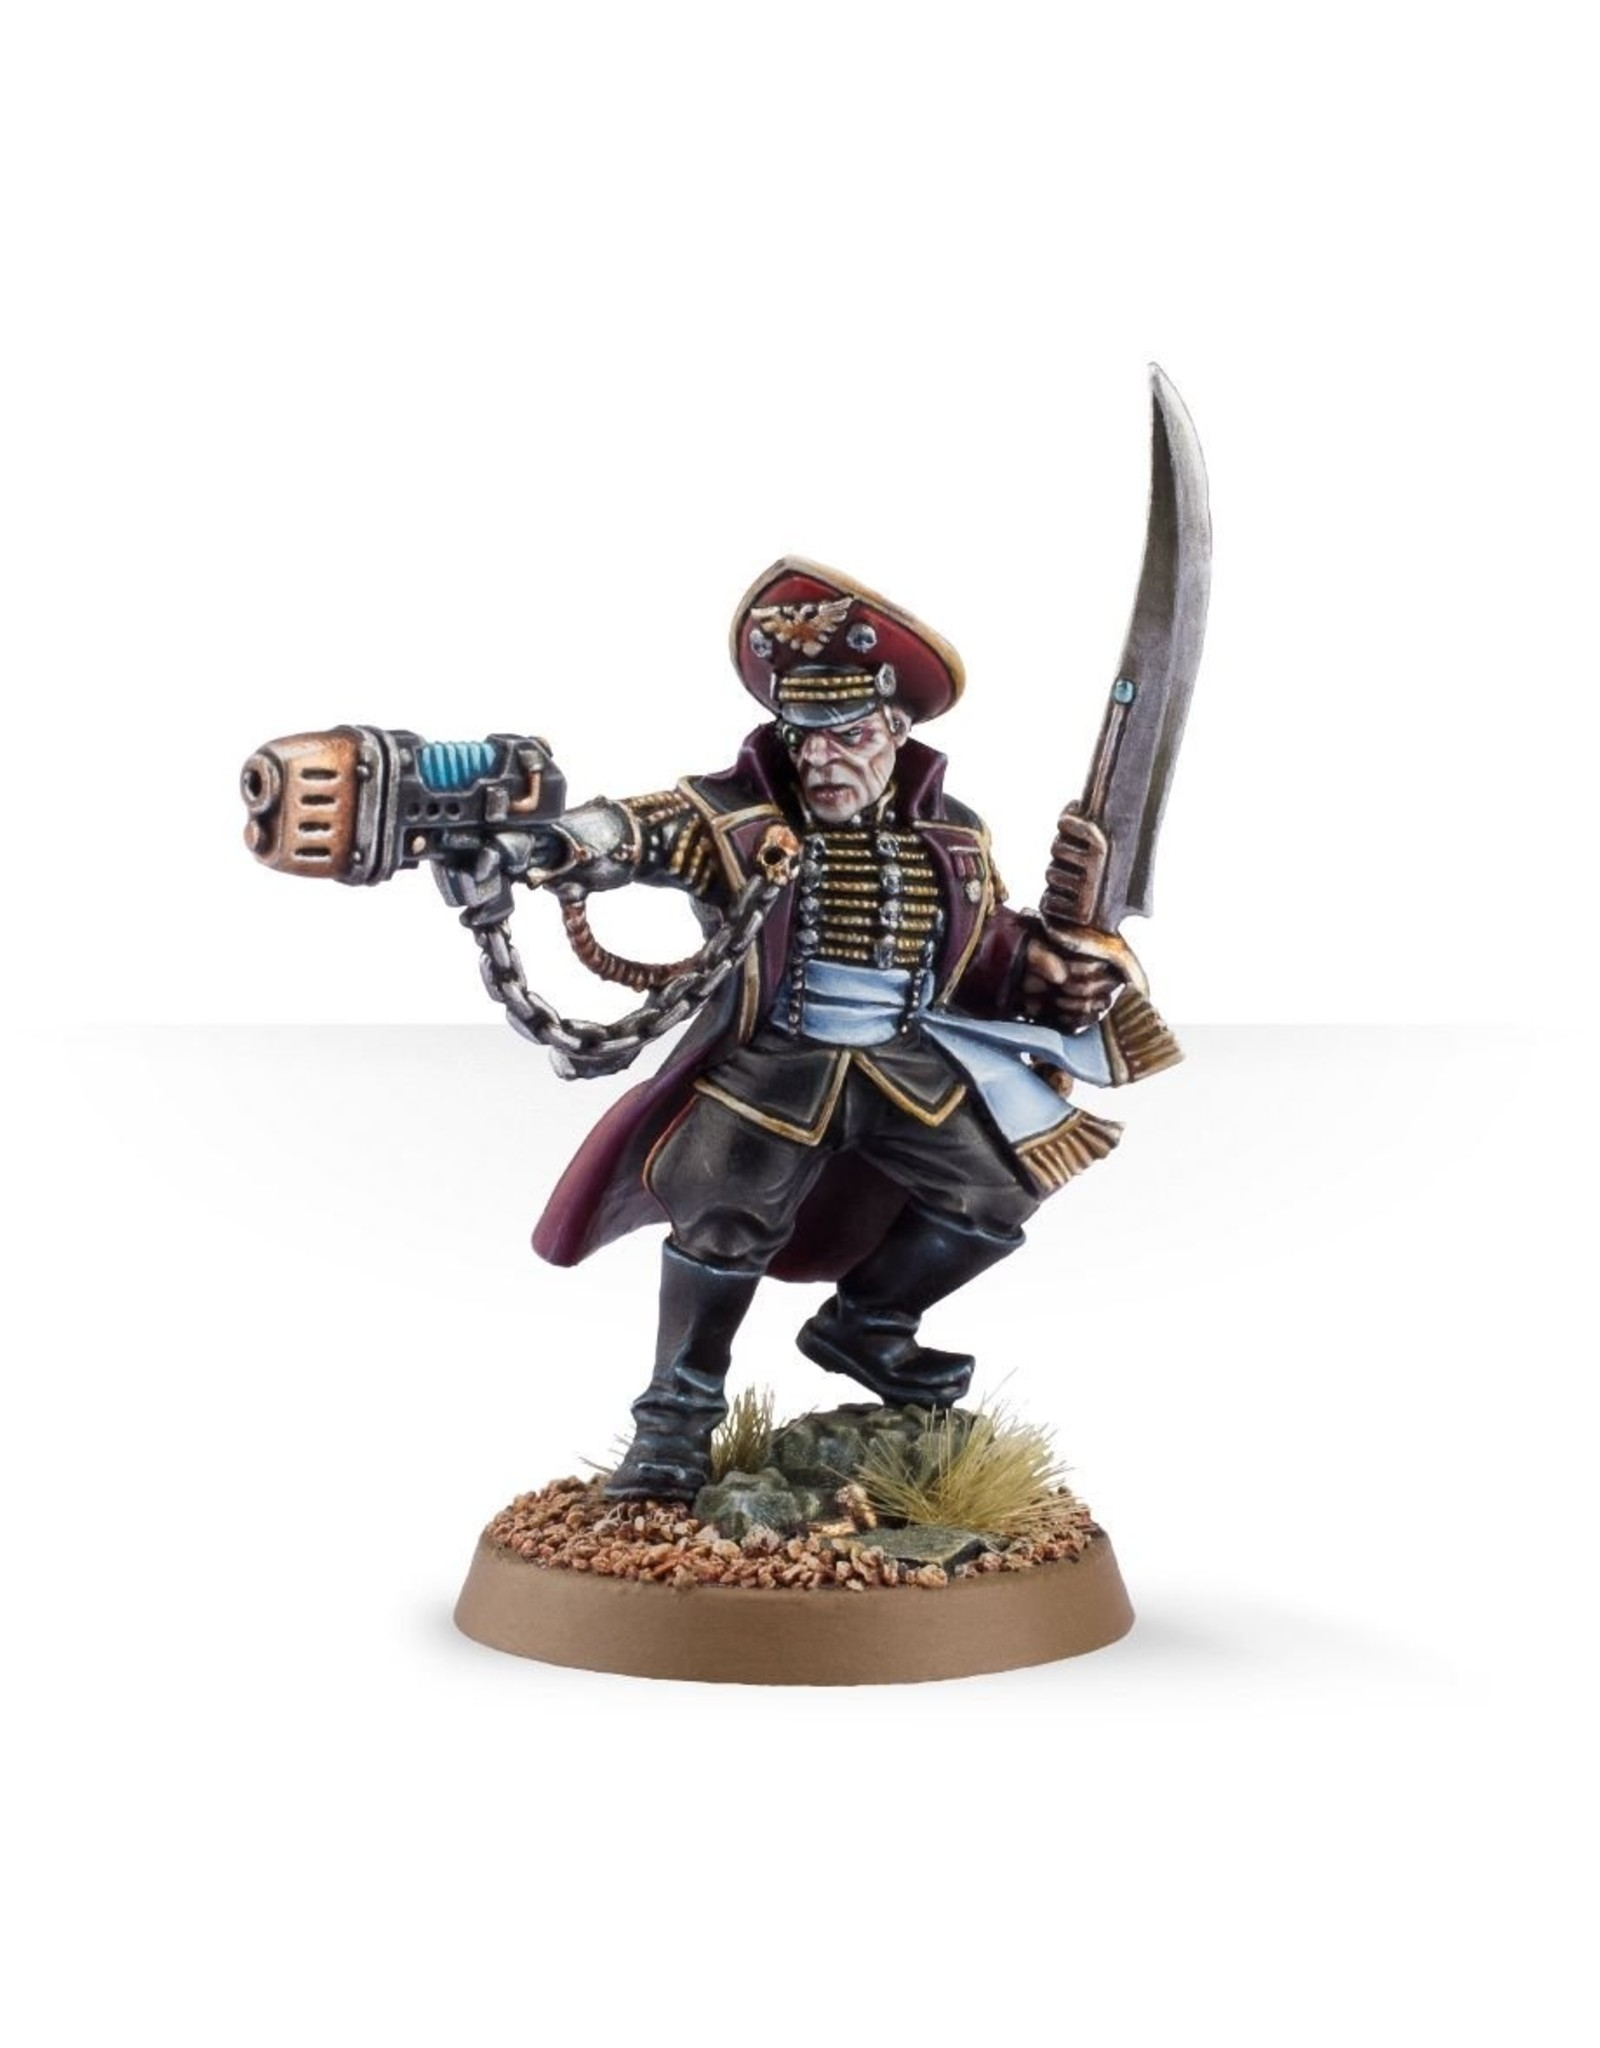 Games Workshop Officio Prefectus Commissar